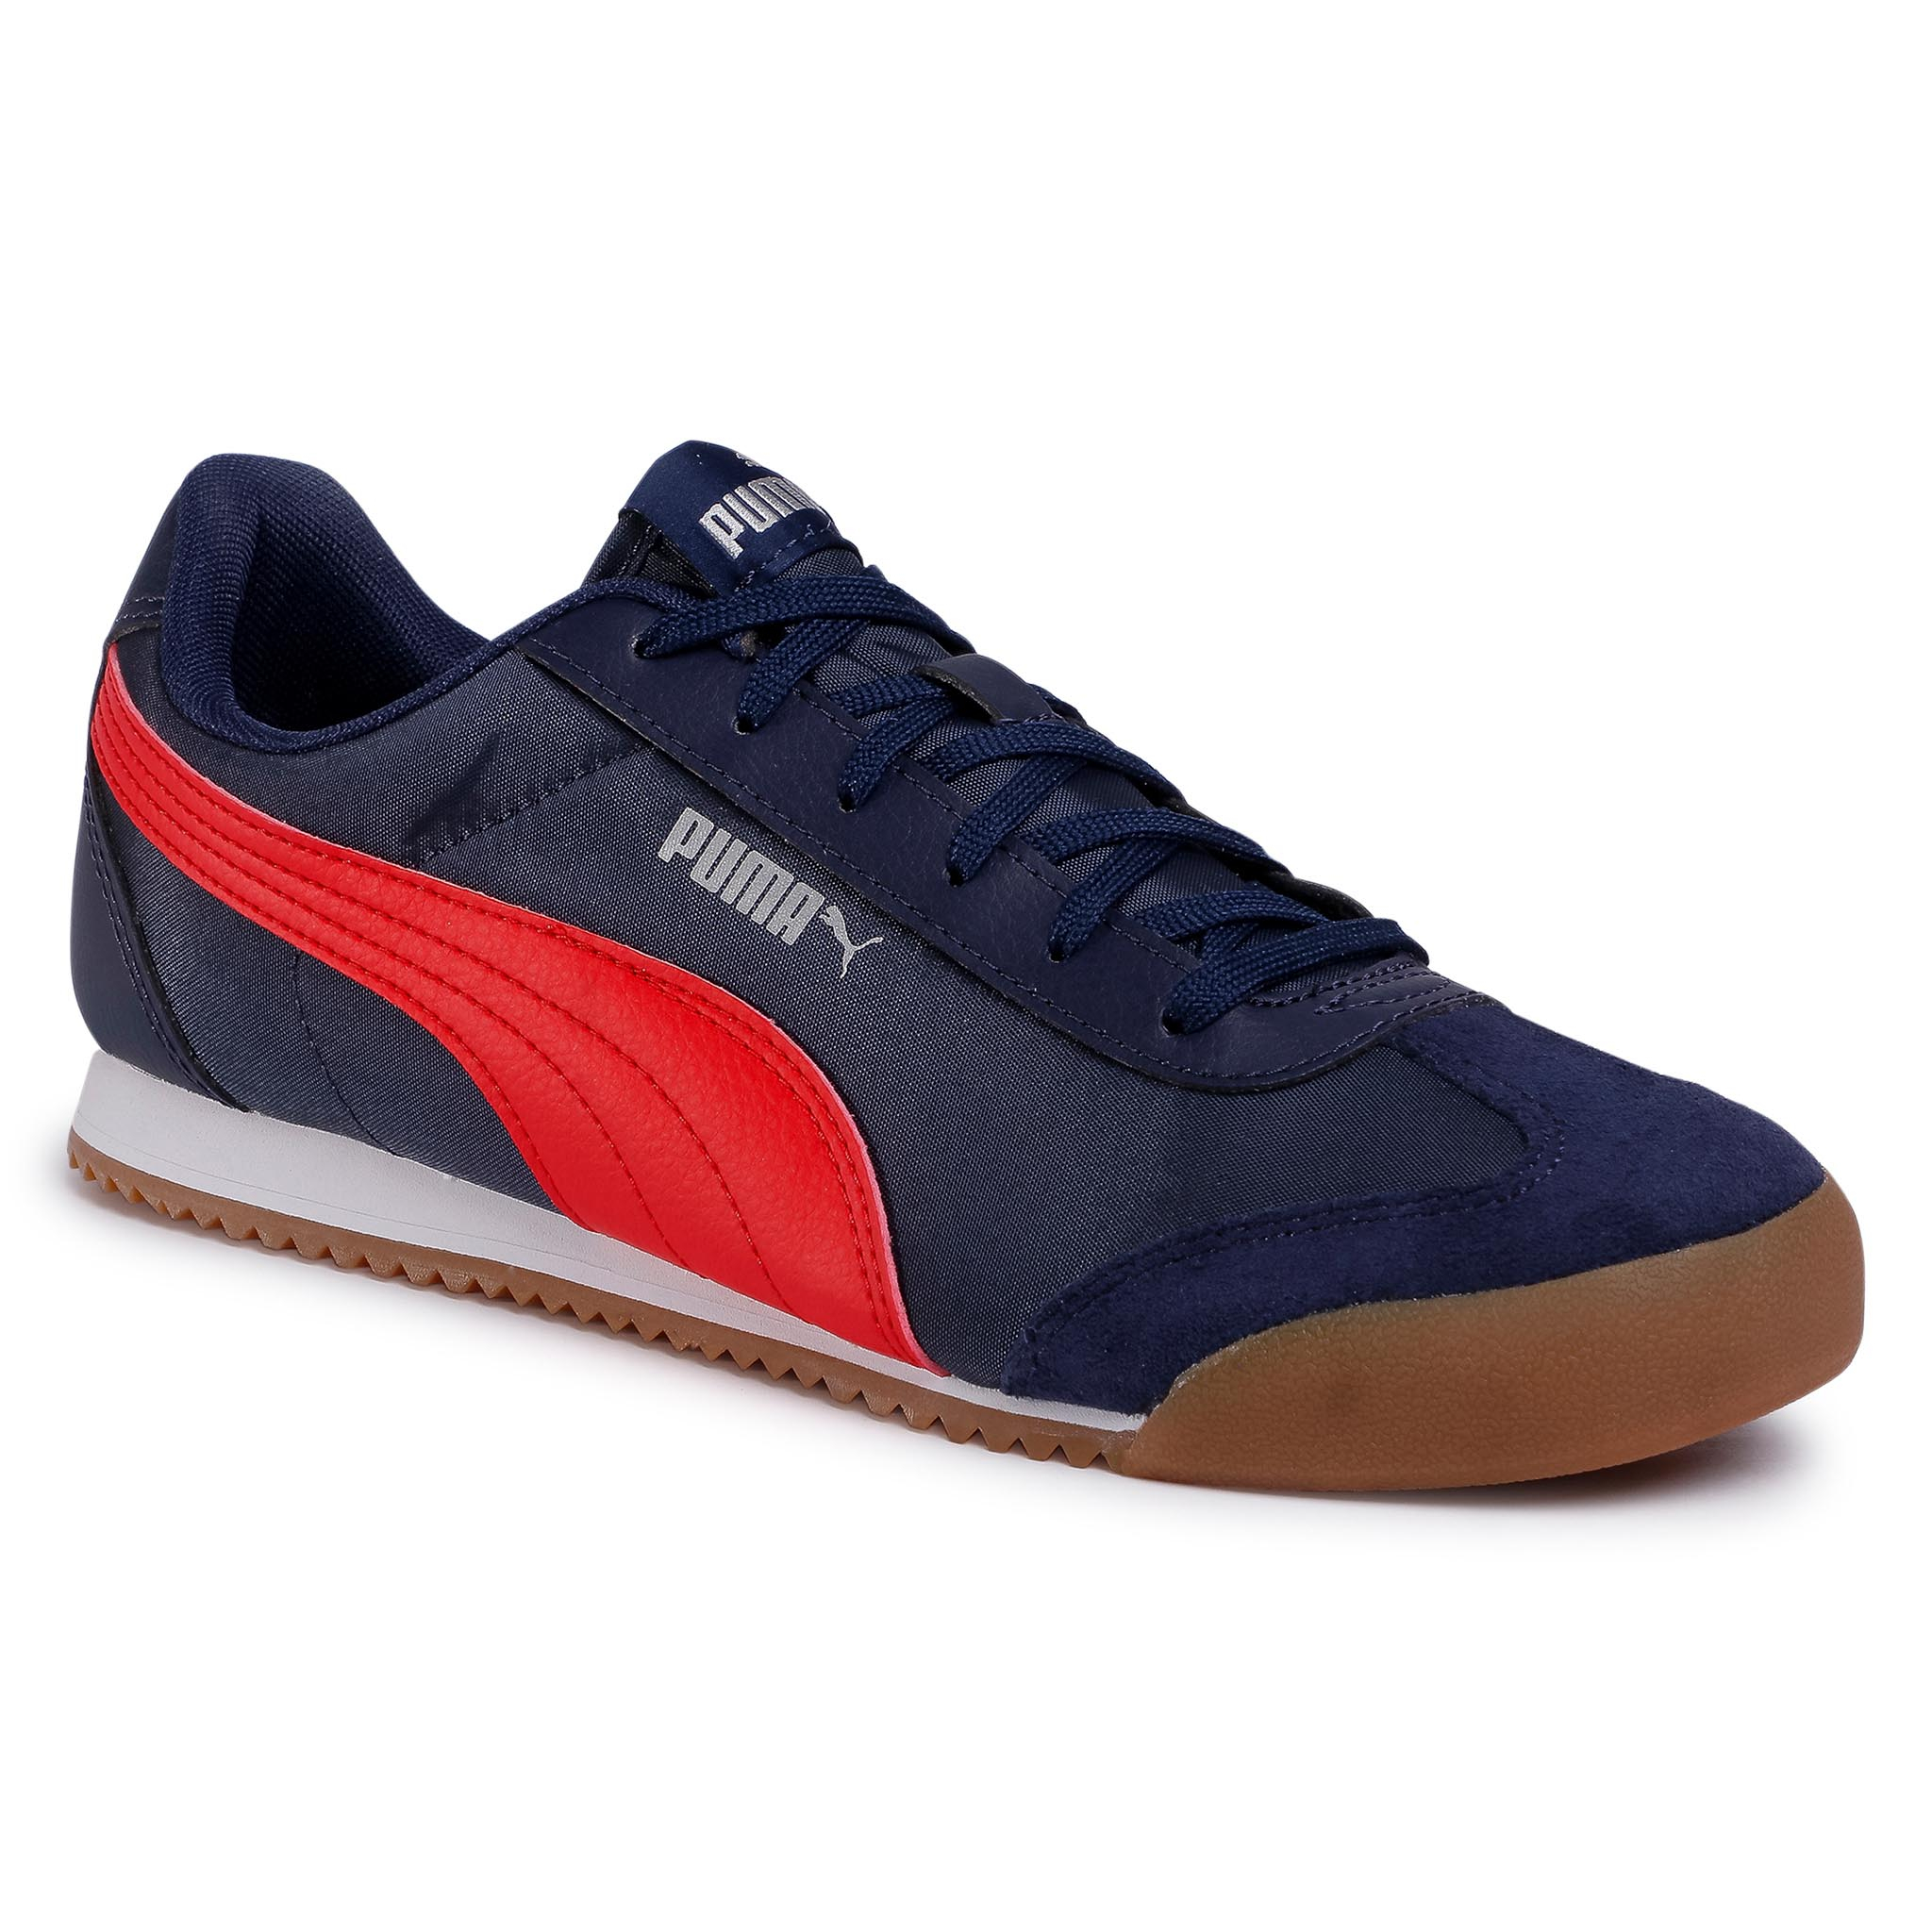 Sneakers PUMA - Turino Nl 371114 02 Peacoat/High Risk Red